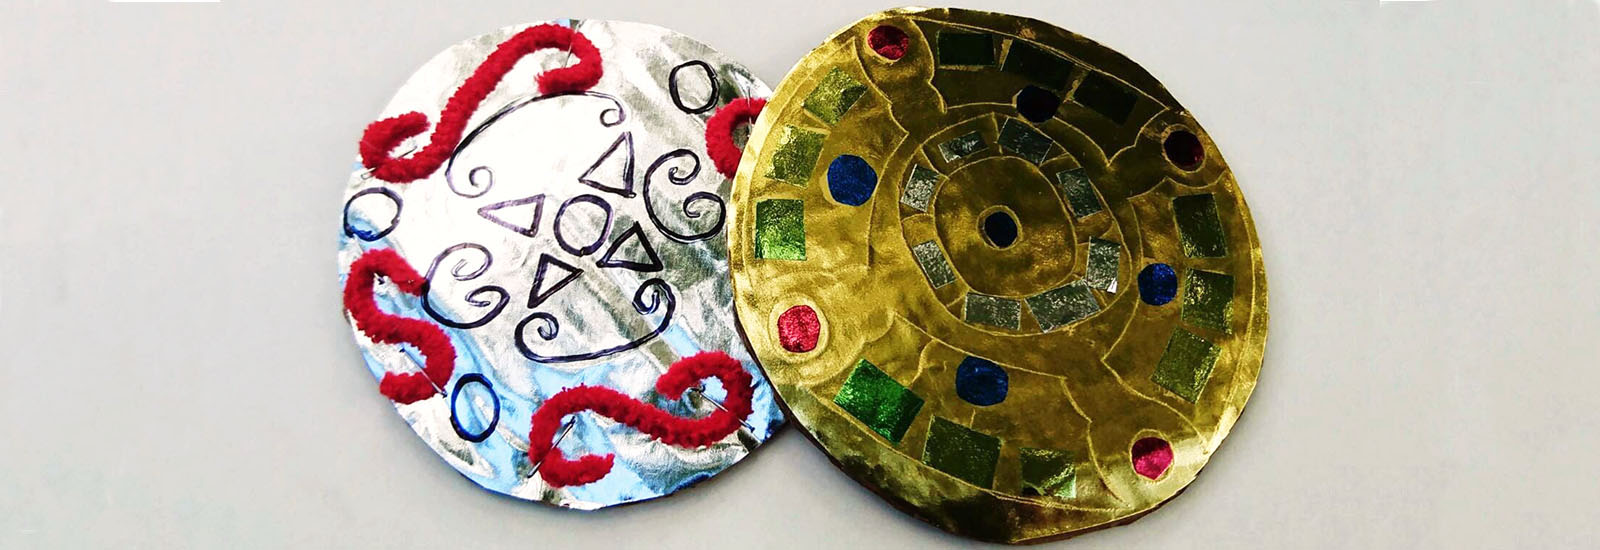 Making the Past: Anglo-Saxon Brooches